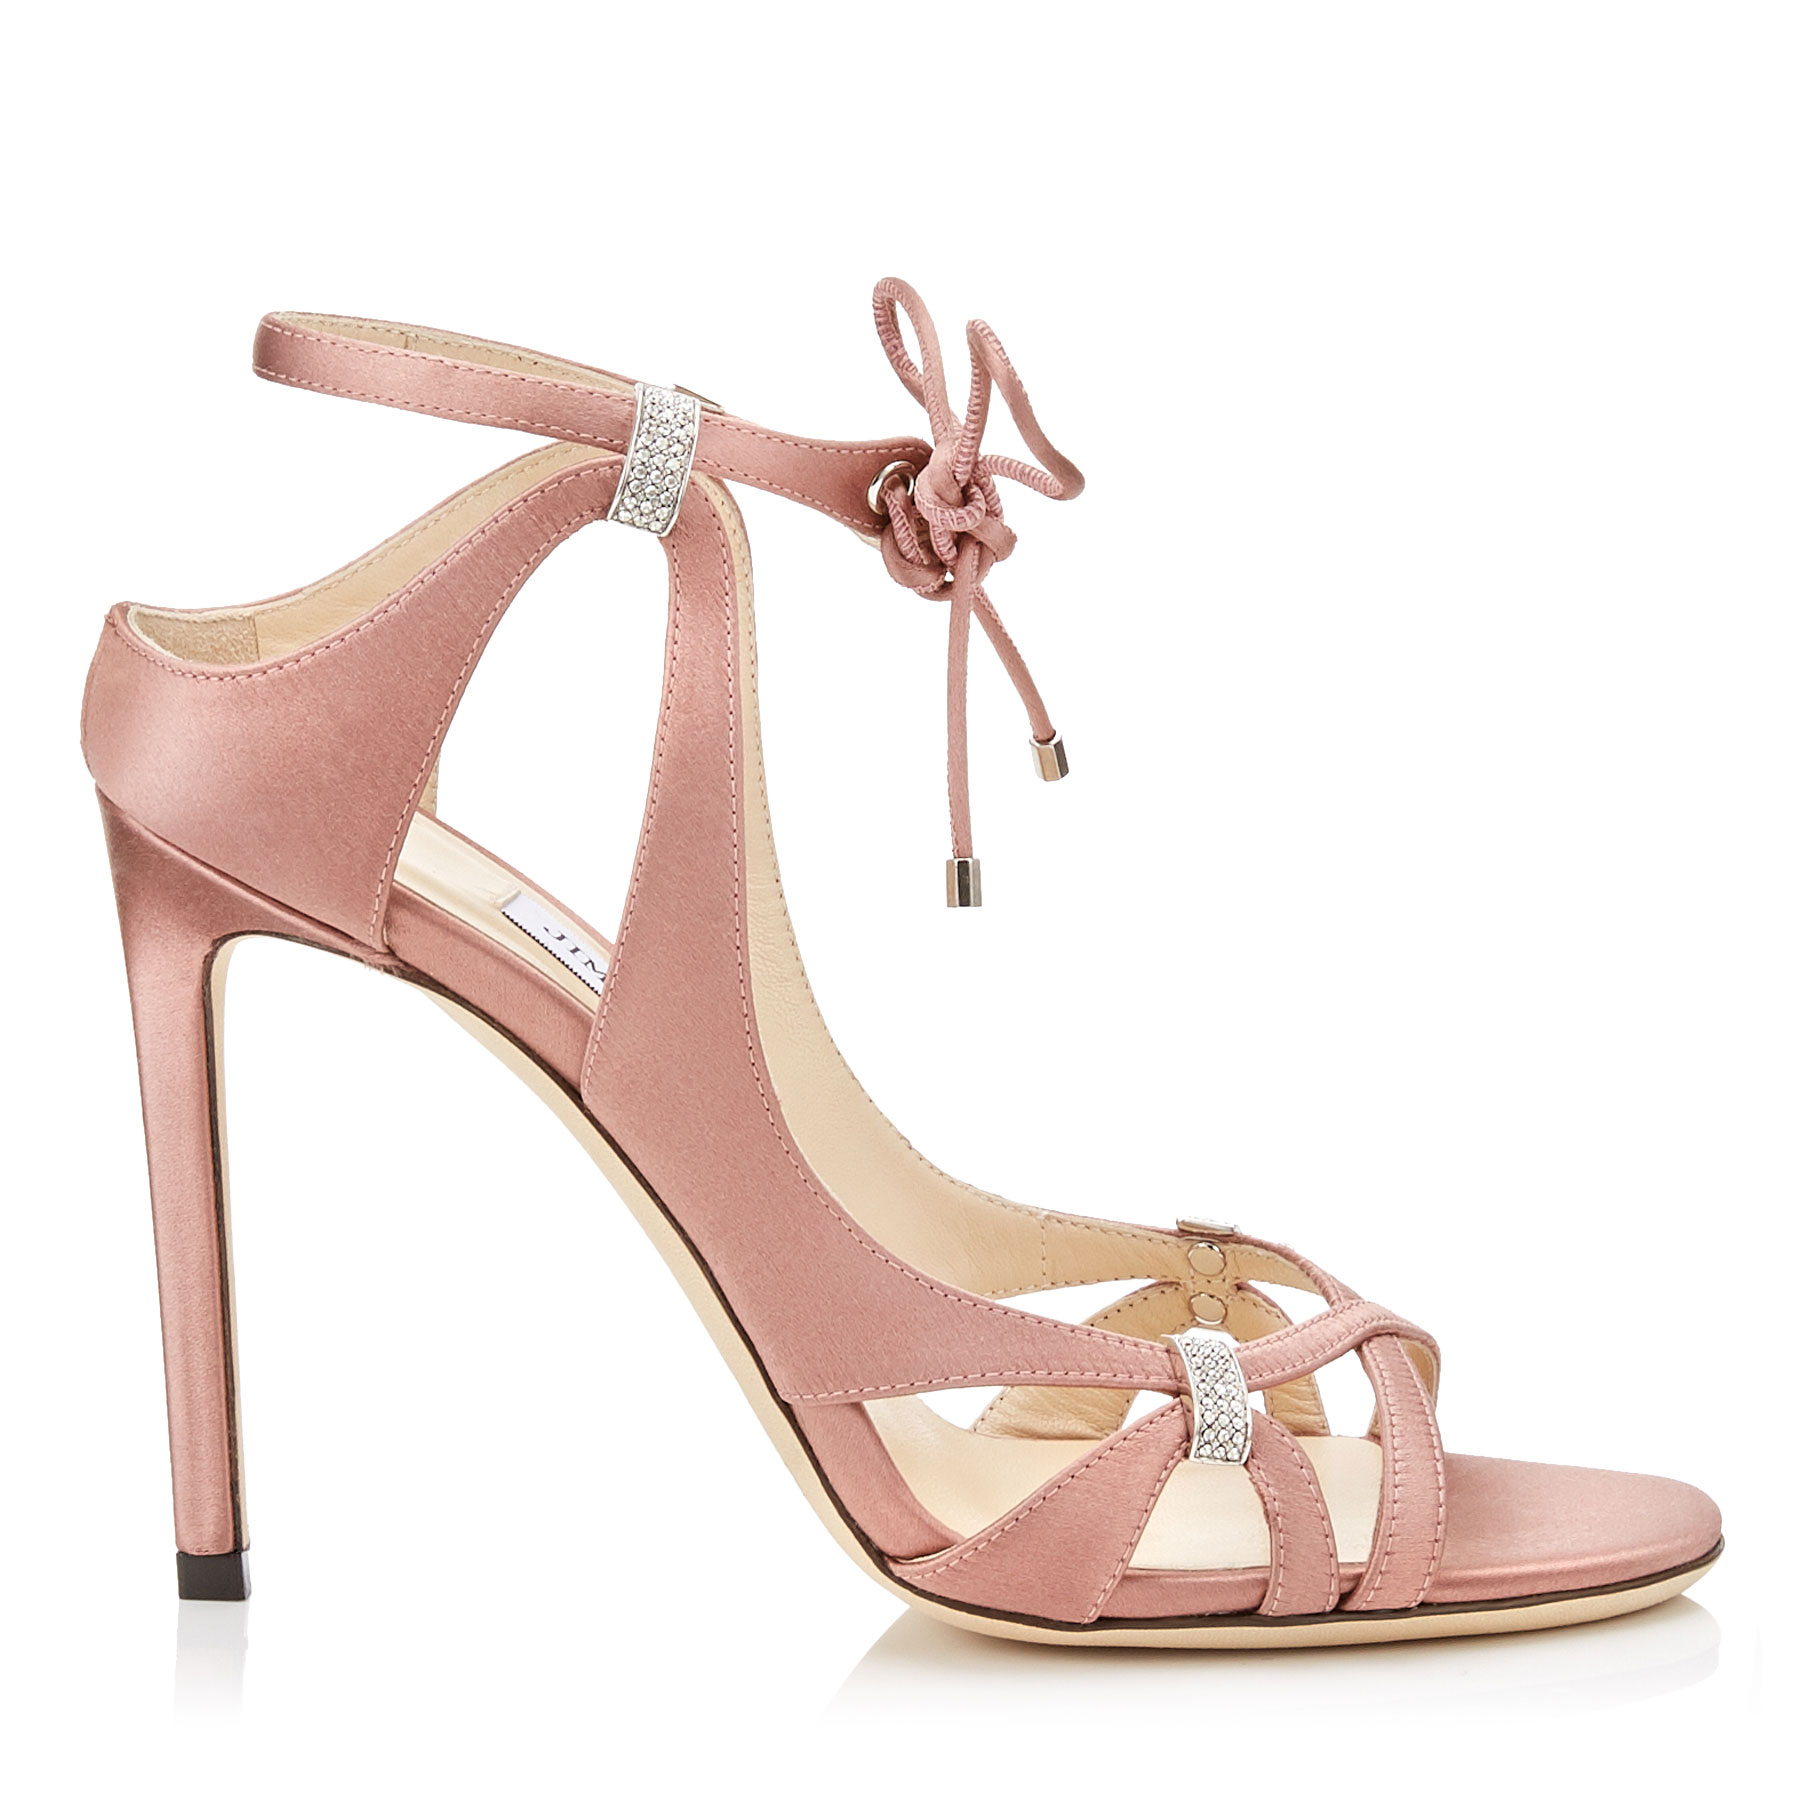 THASSIA 100 Dark Pink Satin Sandals with Swarovski Crystal Detailing by Jimmy Choo